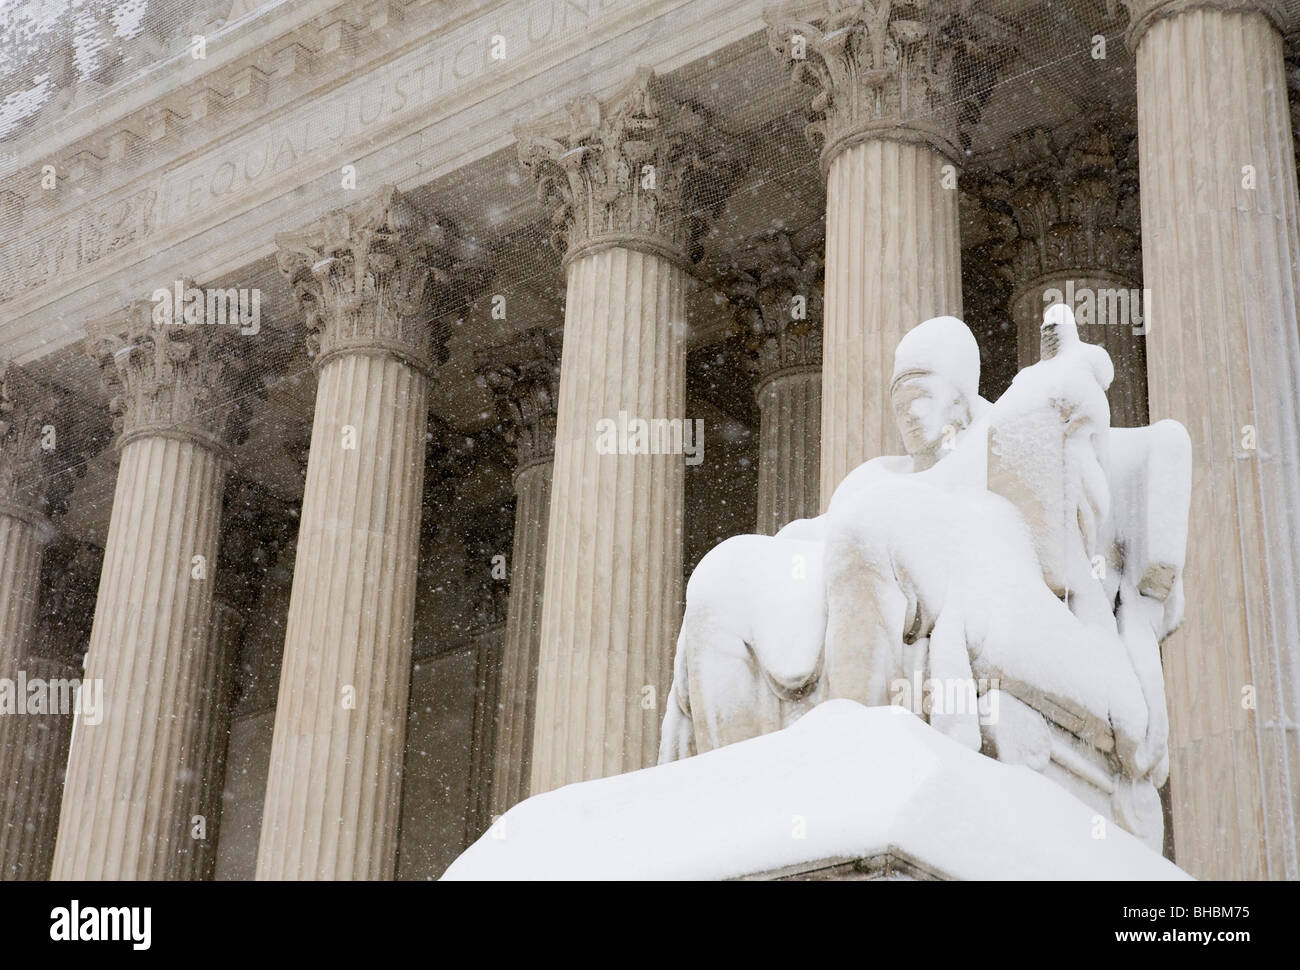 Snow scenes of the United States Supreme Court building. - Stock Image